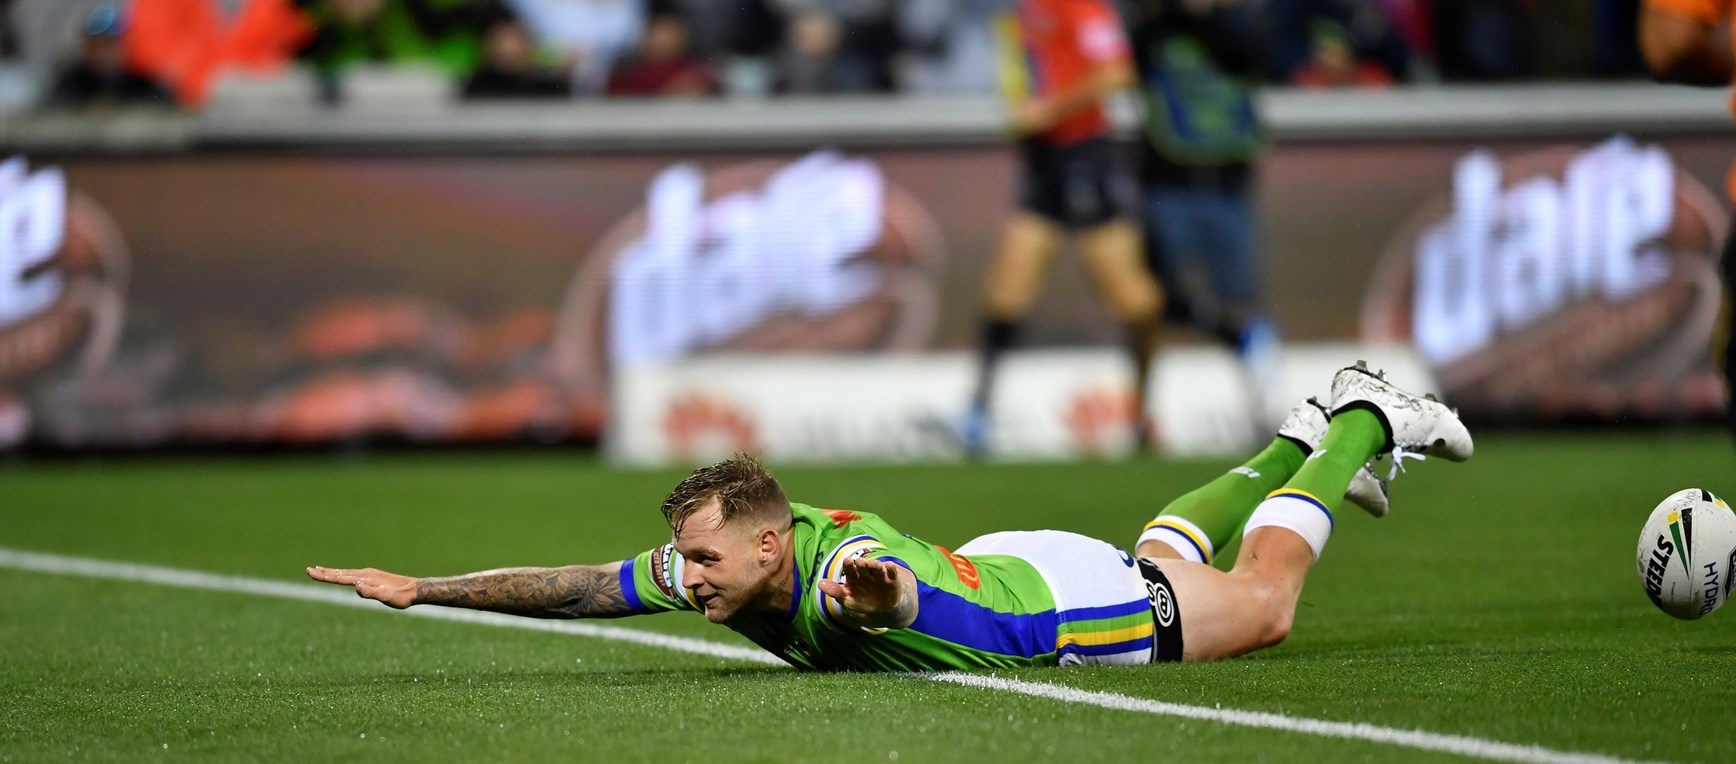 Gallery: Raiders v Eels